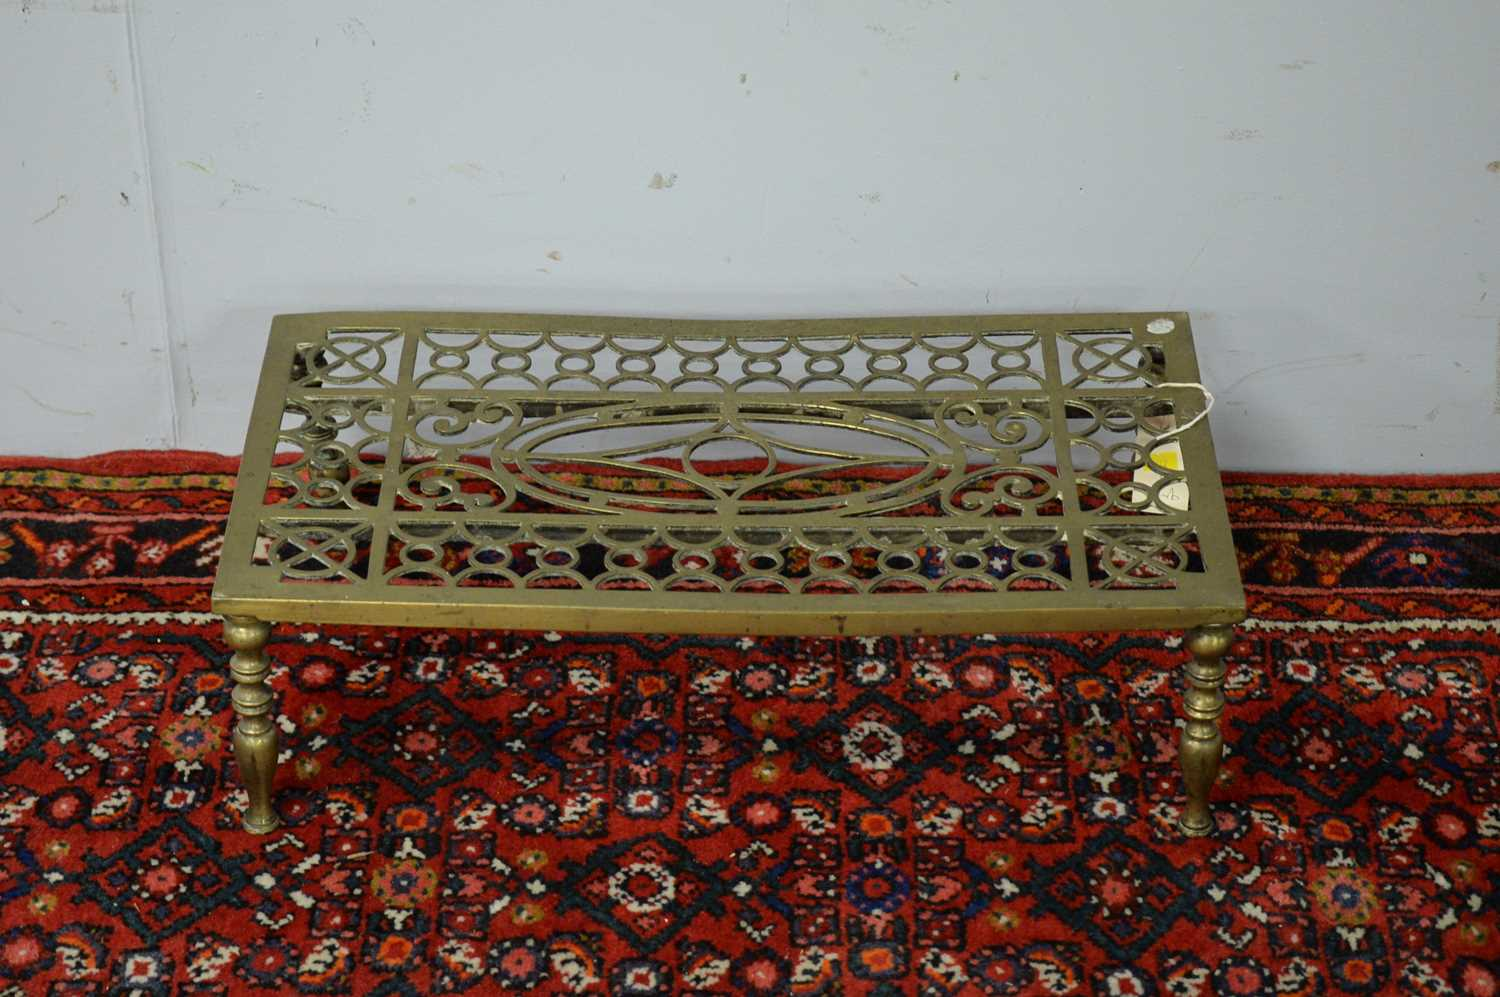 19th C brass trivet and fire curb - Image 2 of 3